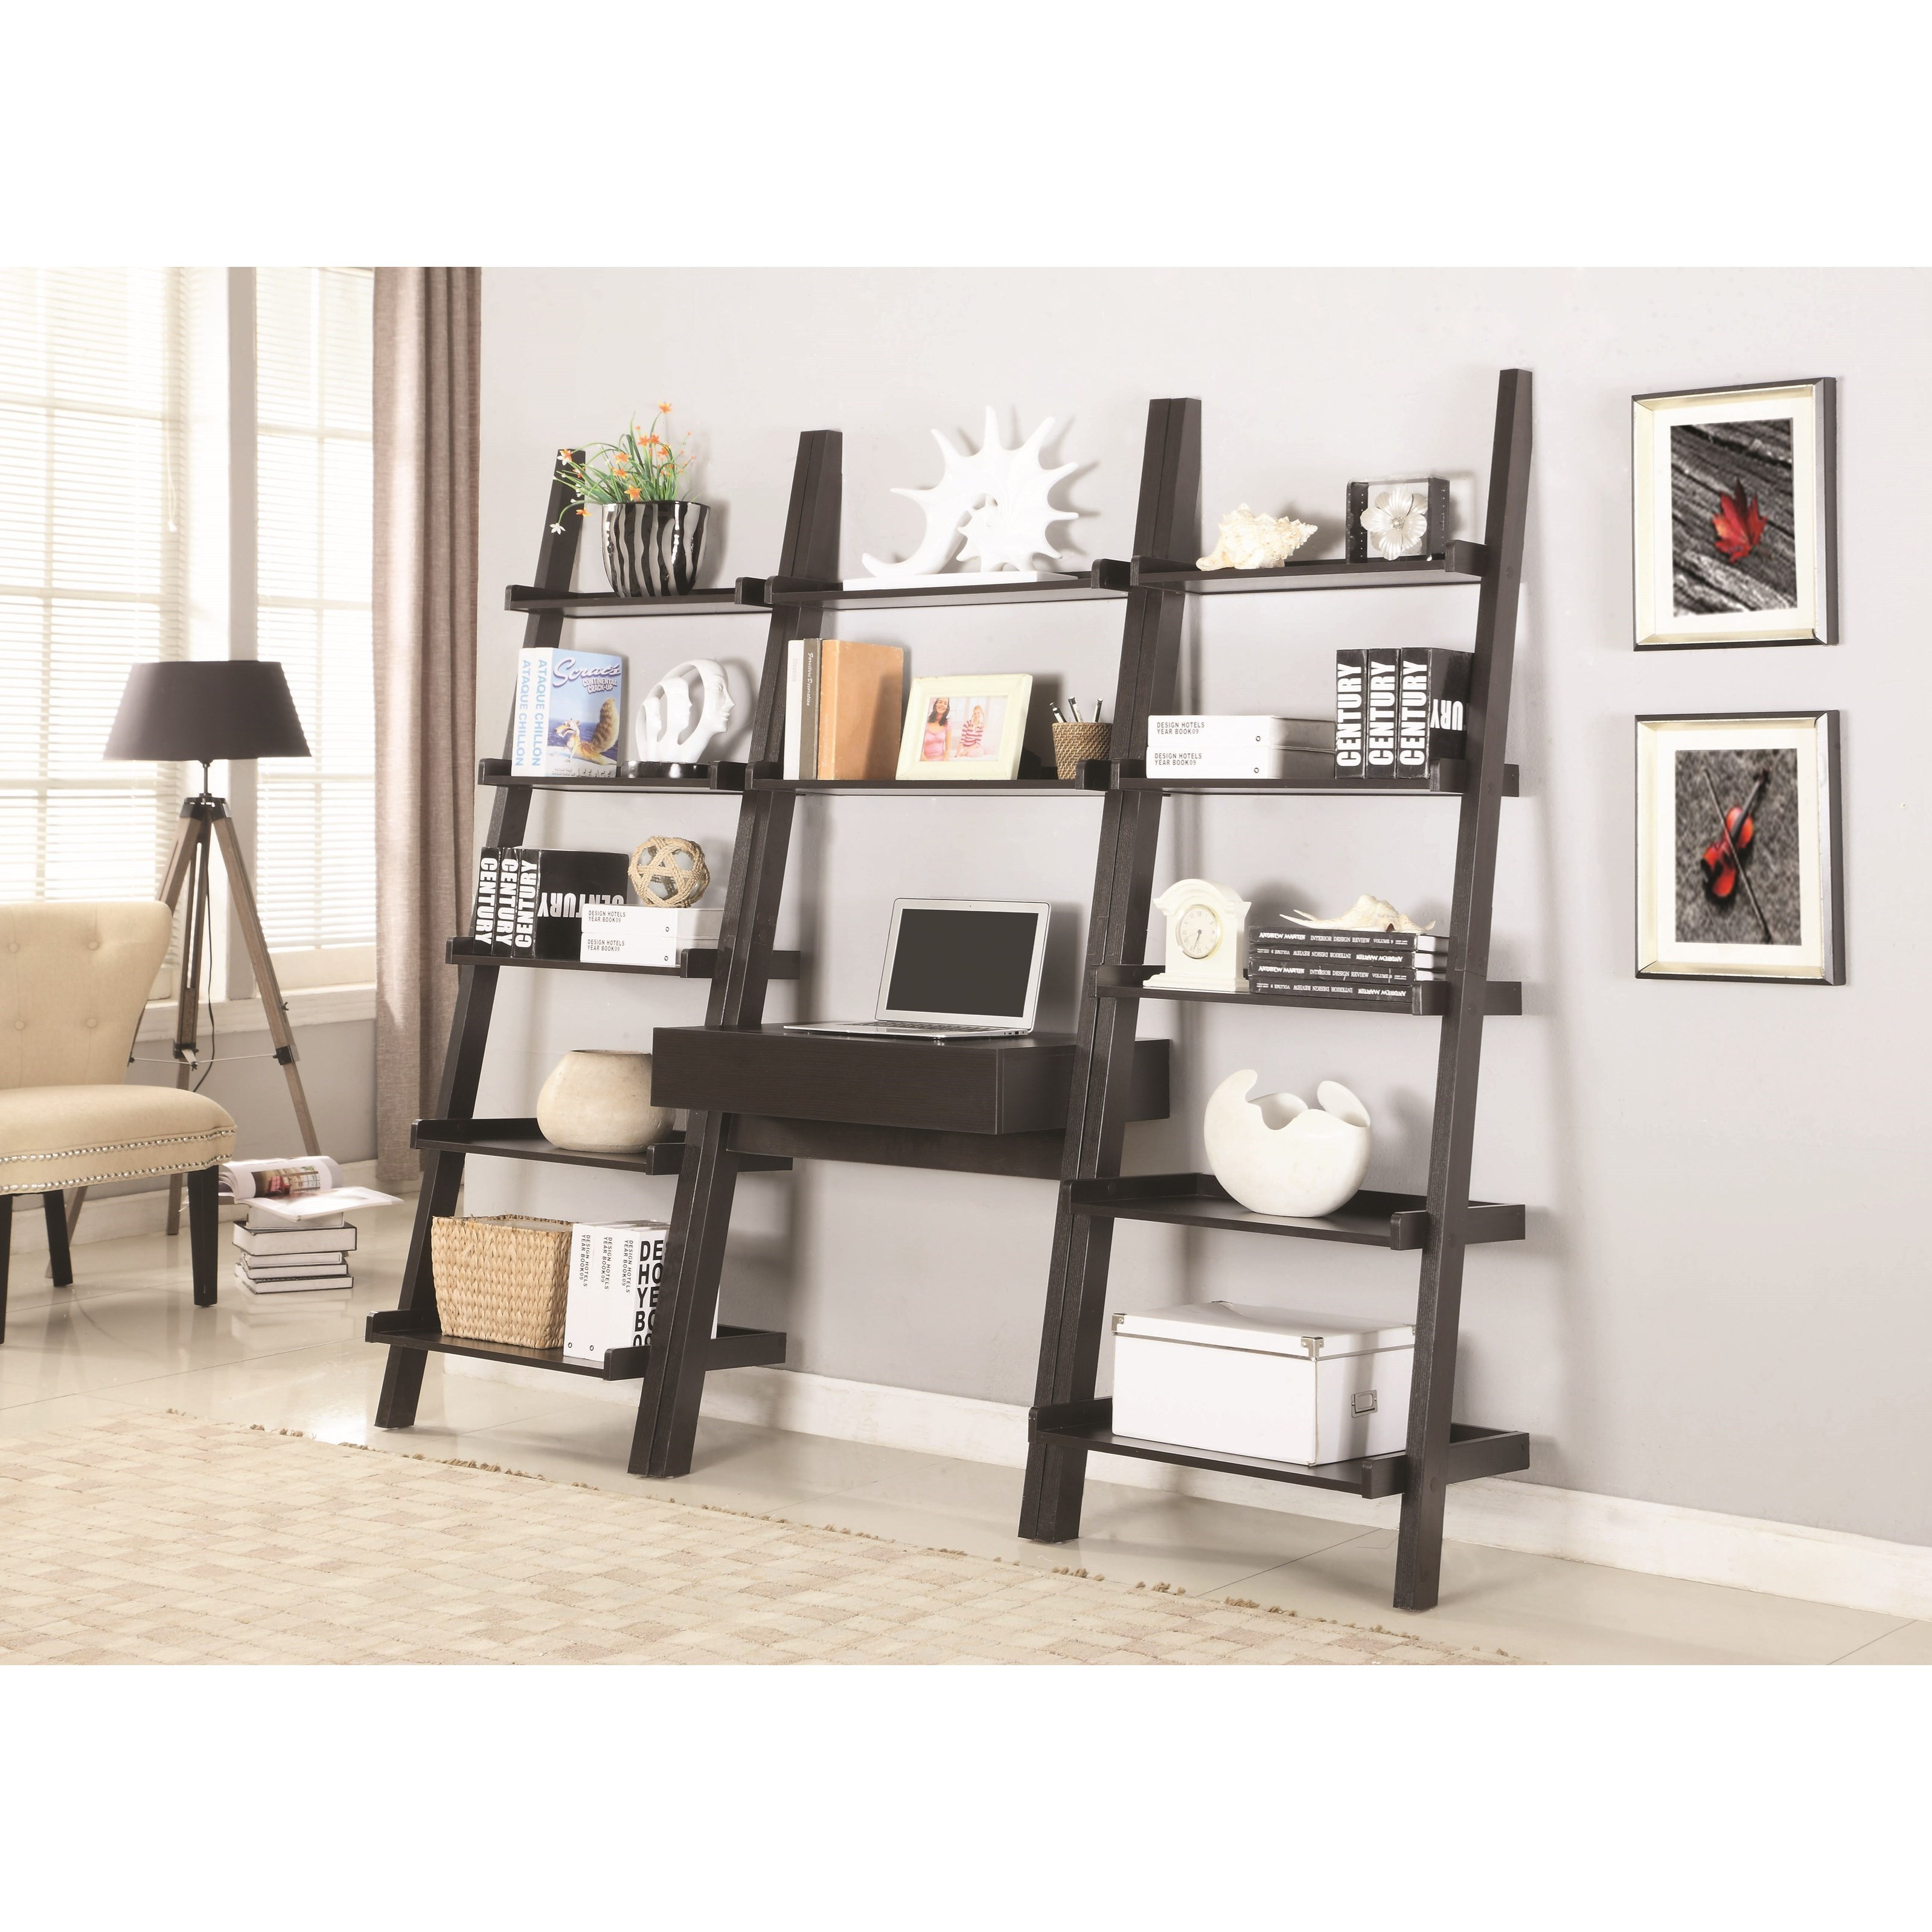 Coaster 801373 Wall Leaning Writing Ladder Desk